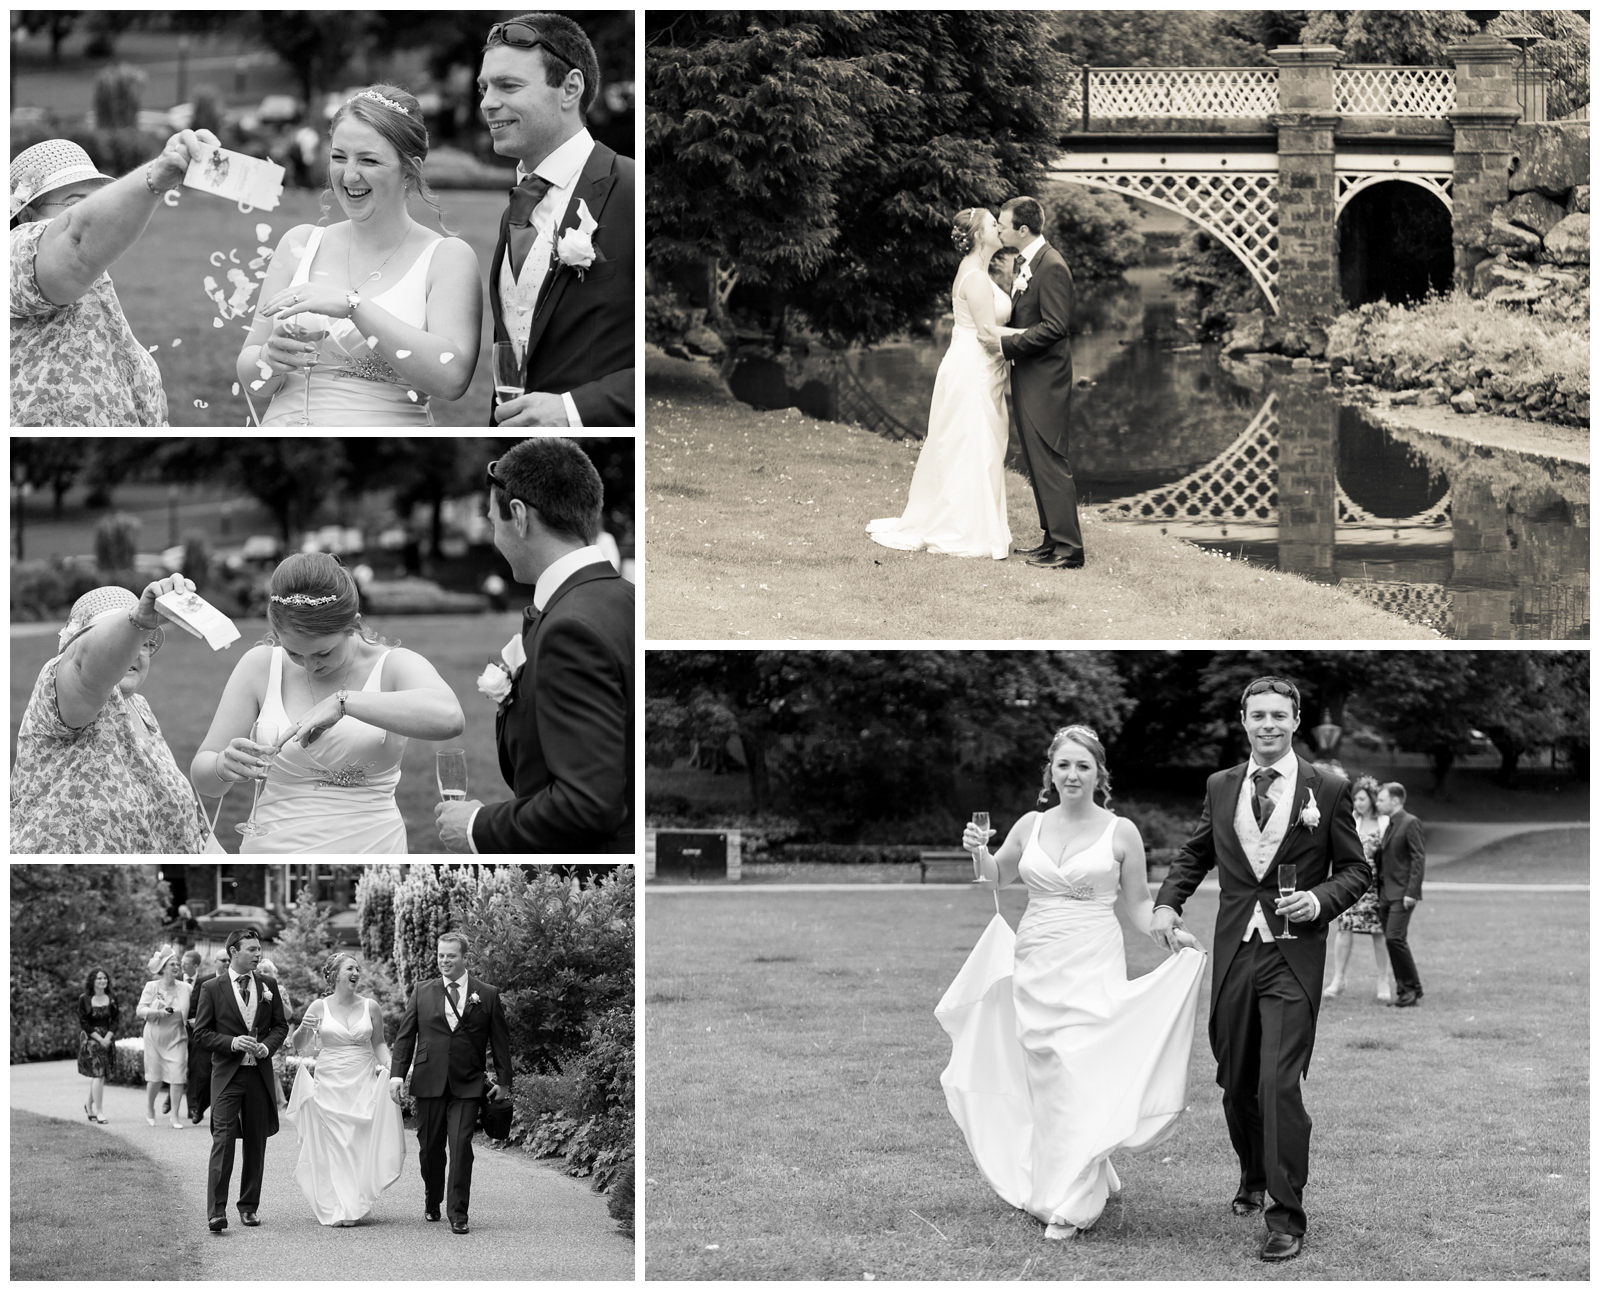 Natural wedding photography at The Old Hall Hotel in Buxton, Derbyshire